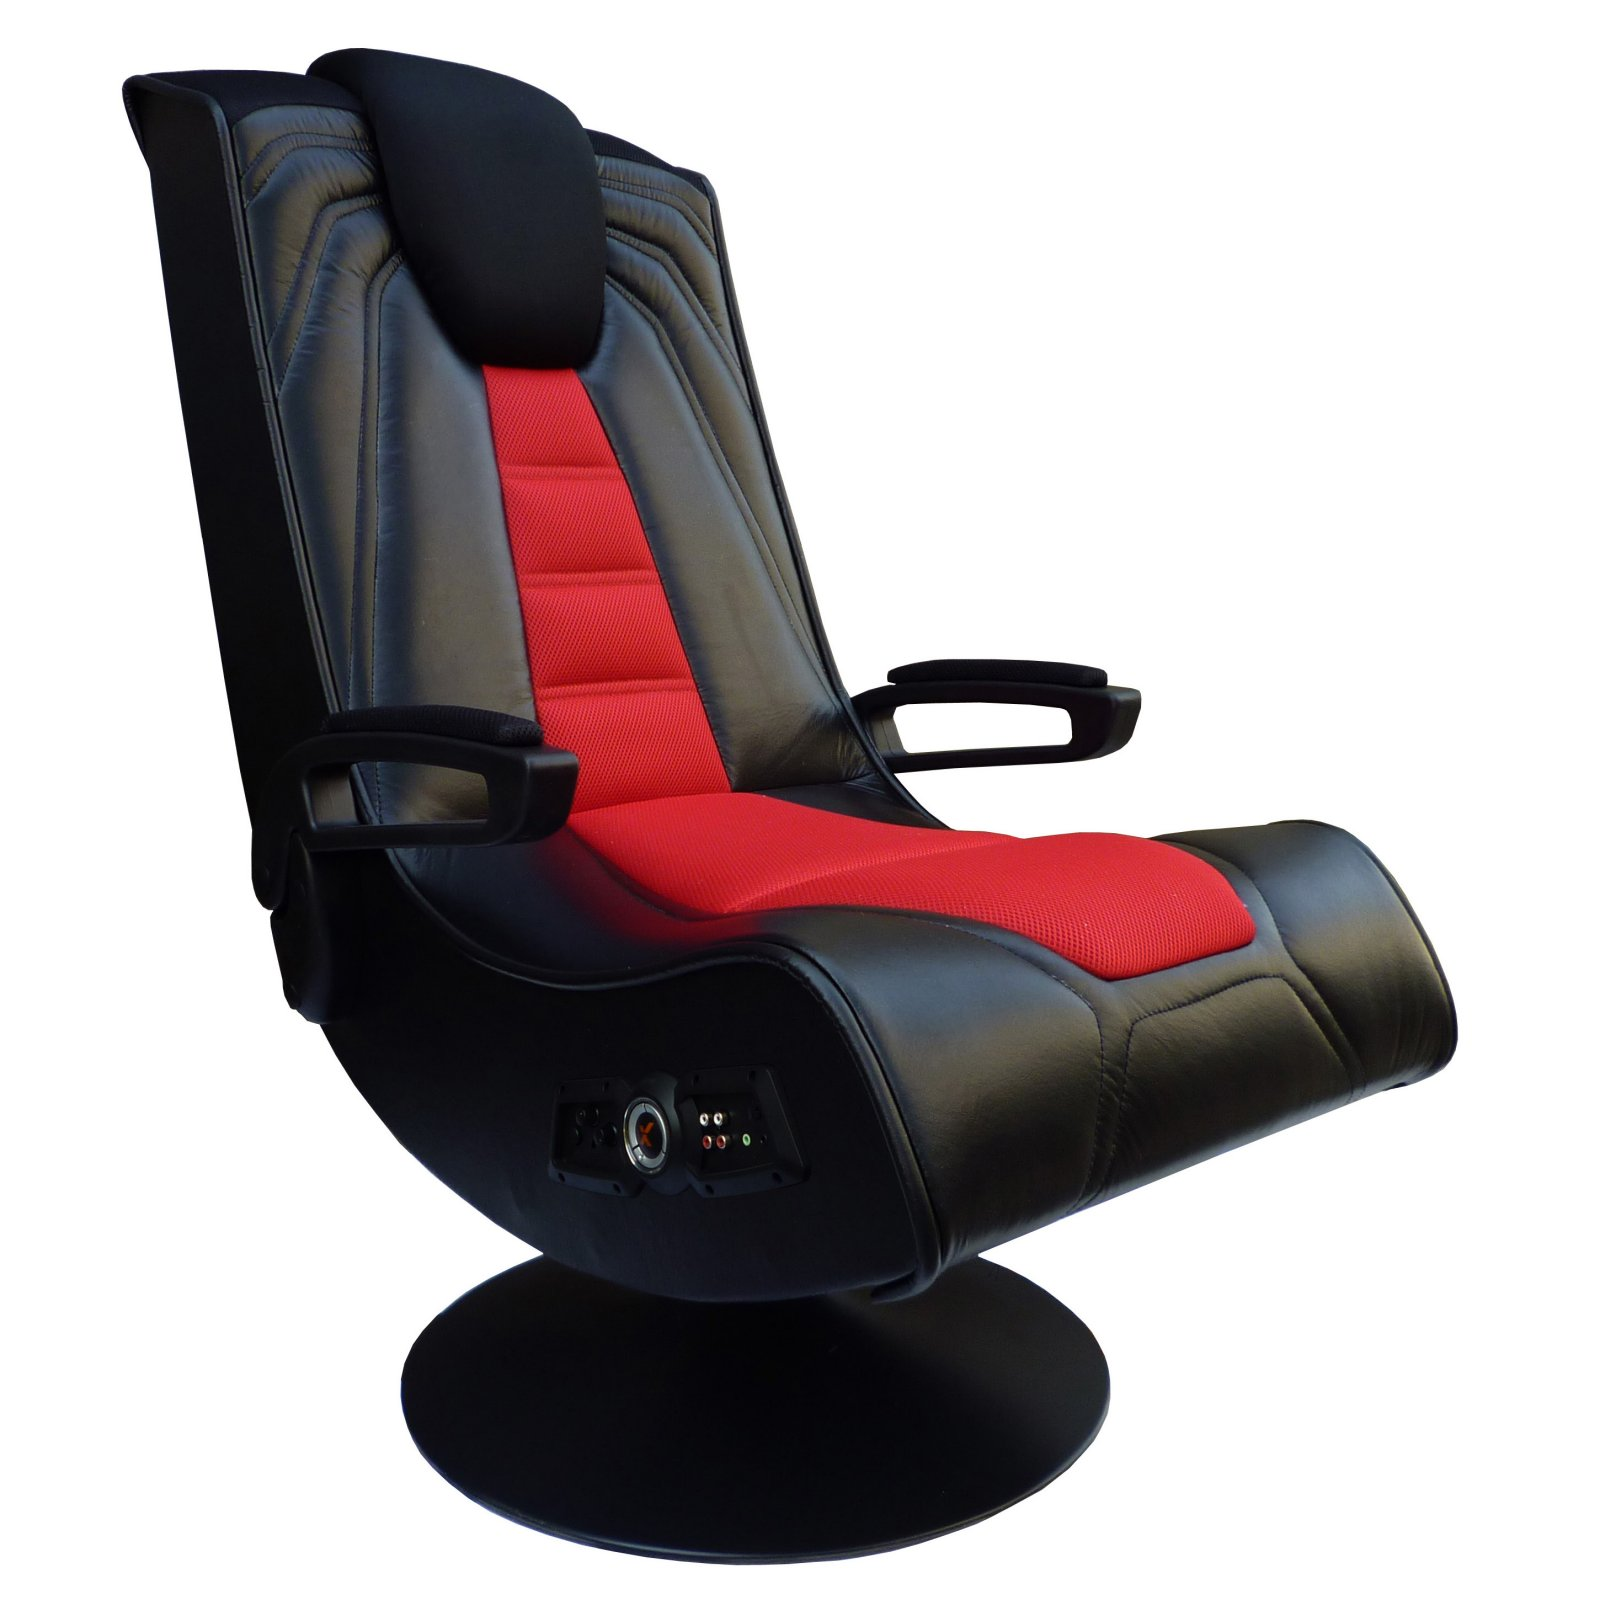 untested xrocker gaming chair returns n08. Black Bedroom Furniture Sets. Home Design Ideas